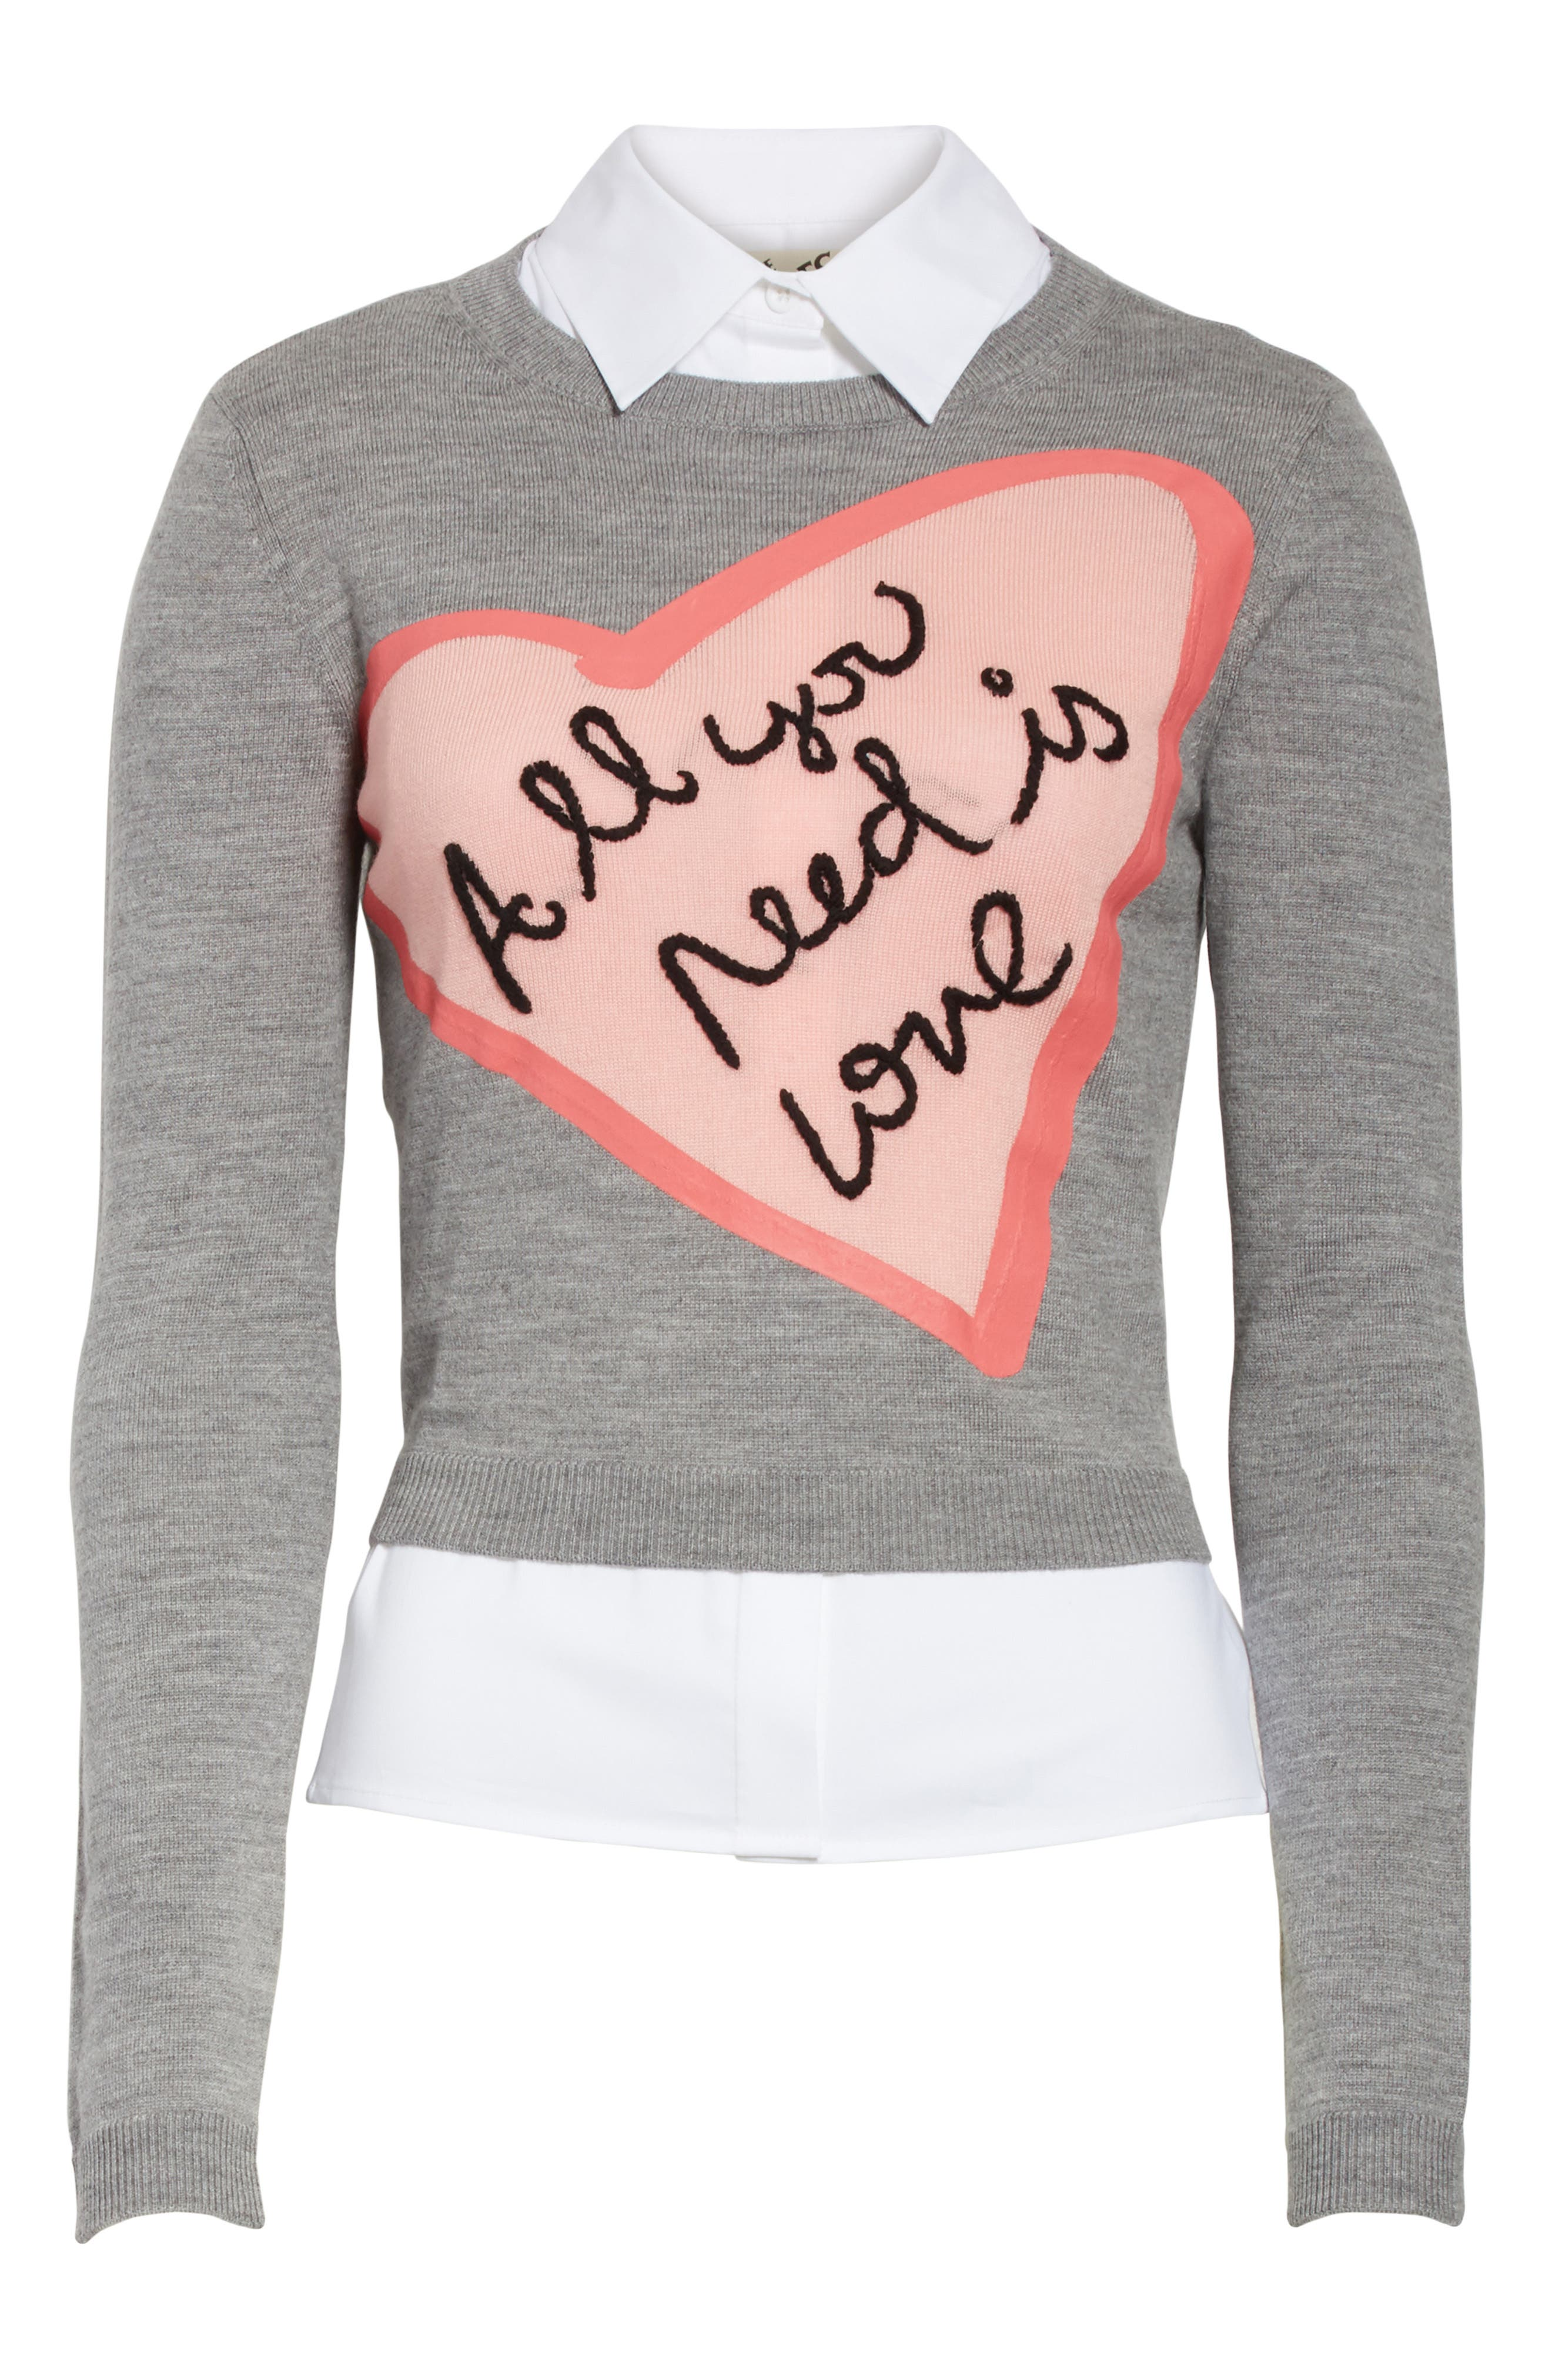 AO x The Beatles Nikia All You Need is Love Pullover,                             Alternate thumbnail 6, color,                             077